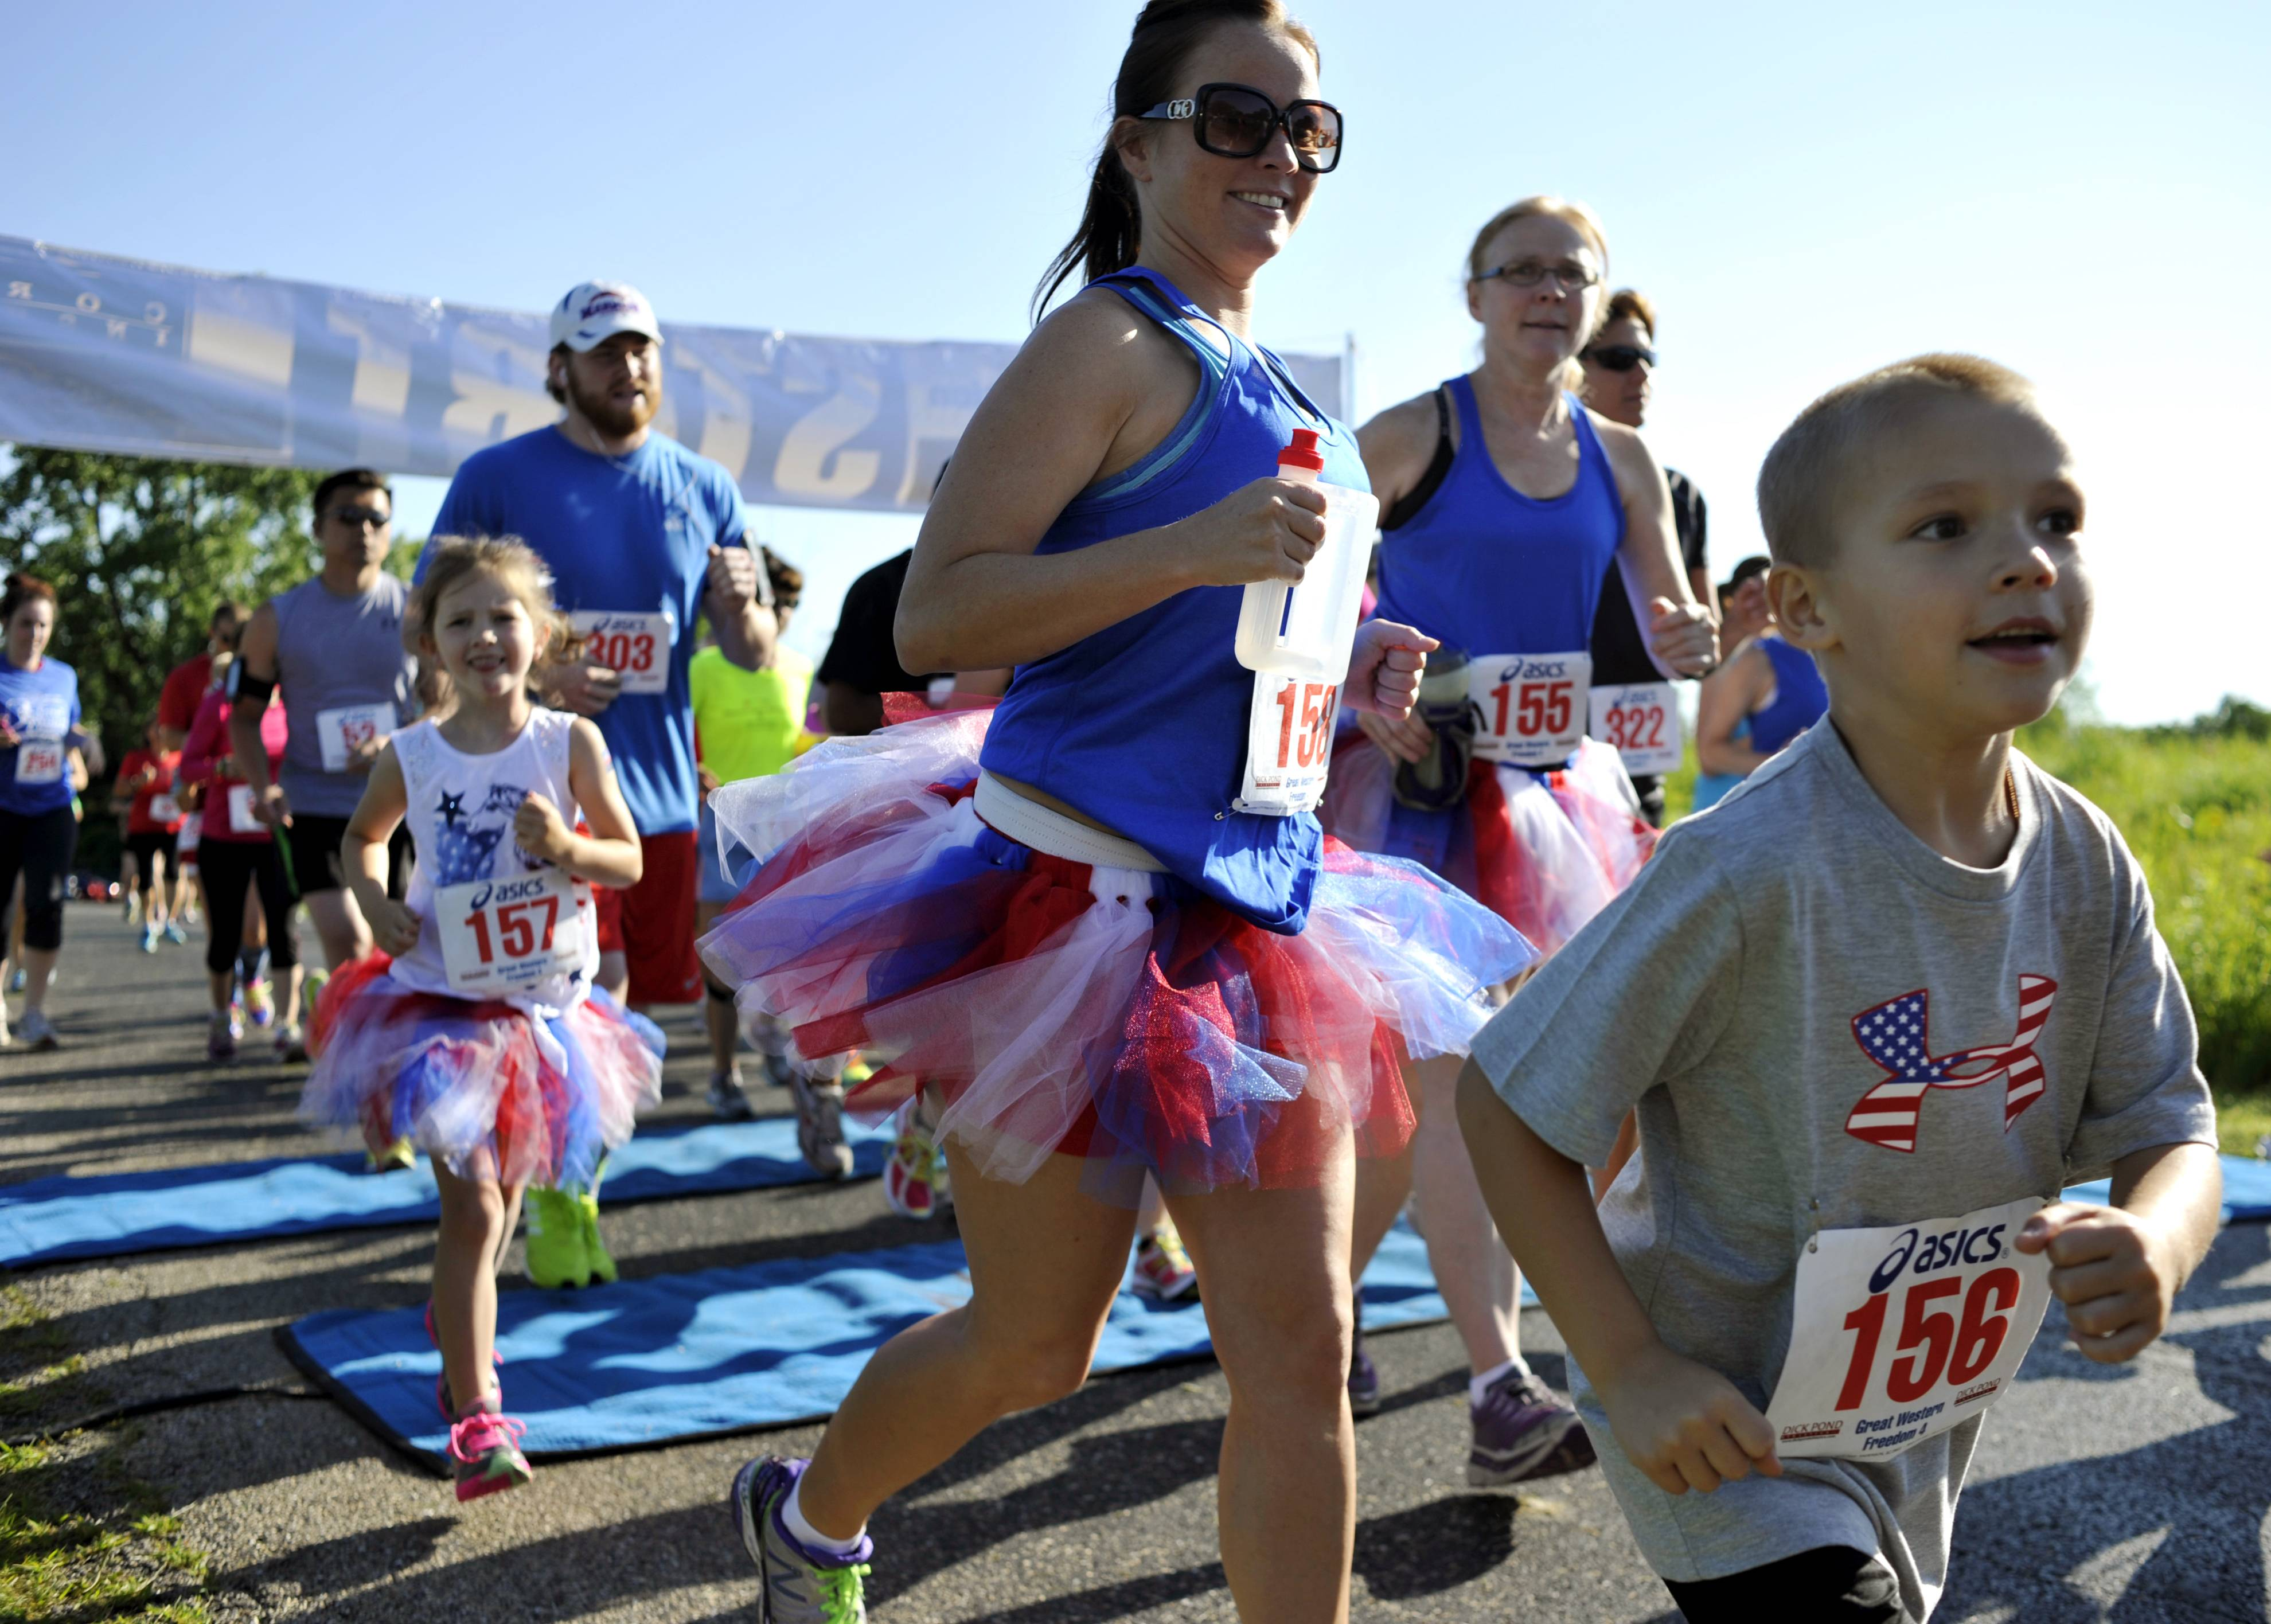 Aiden Jaquez, 6, gets a head start with his family, Margie Clark, Addison Clark, 6, and grandmother Kathleen Taylor, of Montgomery close behind him at the July Fourth Great Western Freedom 4 to benefit Lazarus House at the LeRoy Oakes Forest Preserve in St. Charles on Friday.